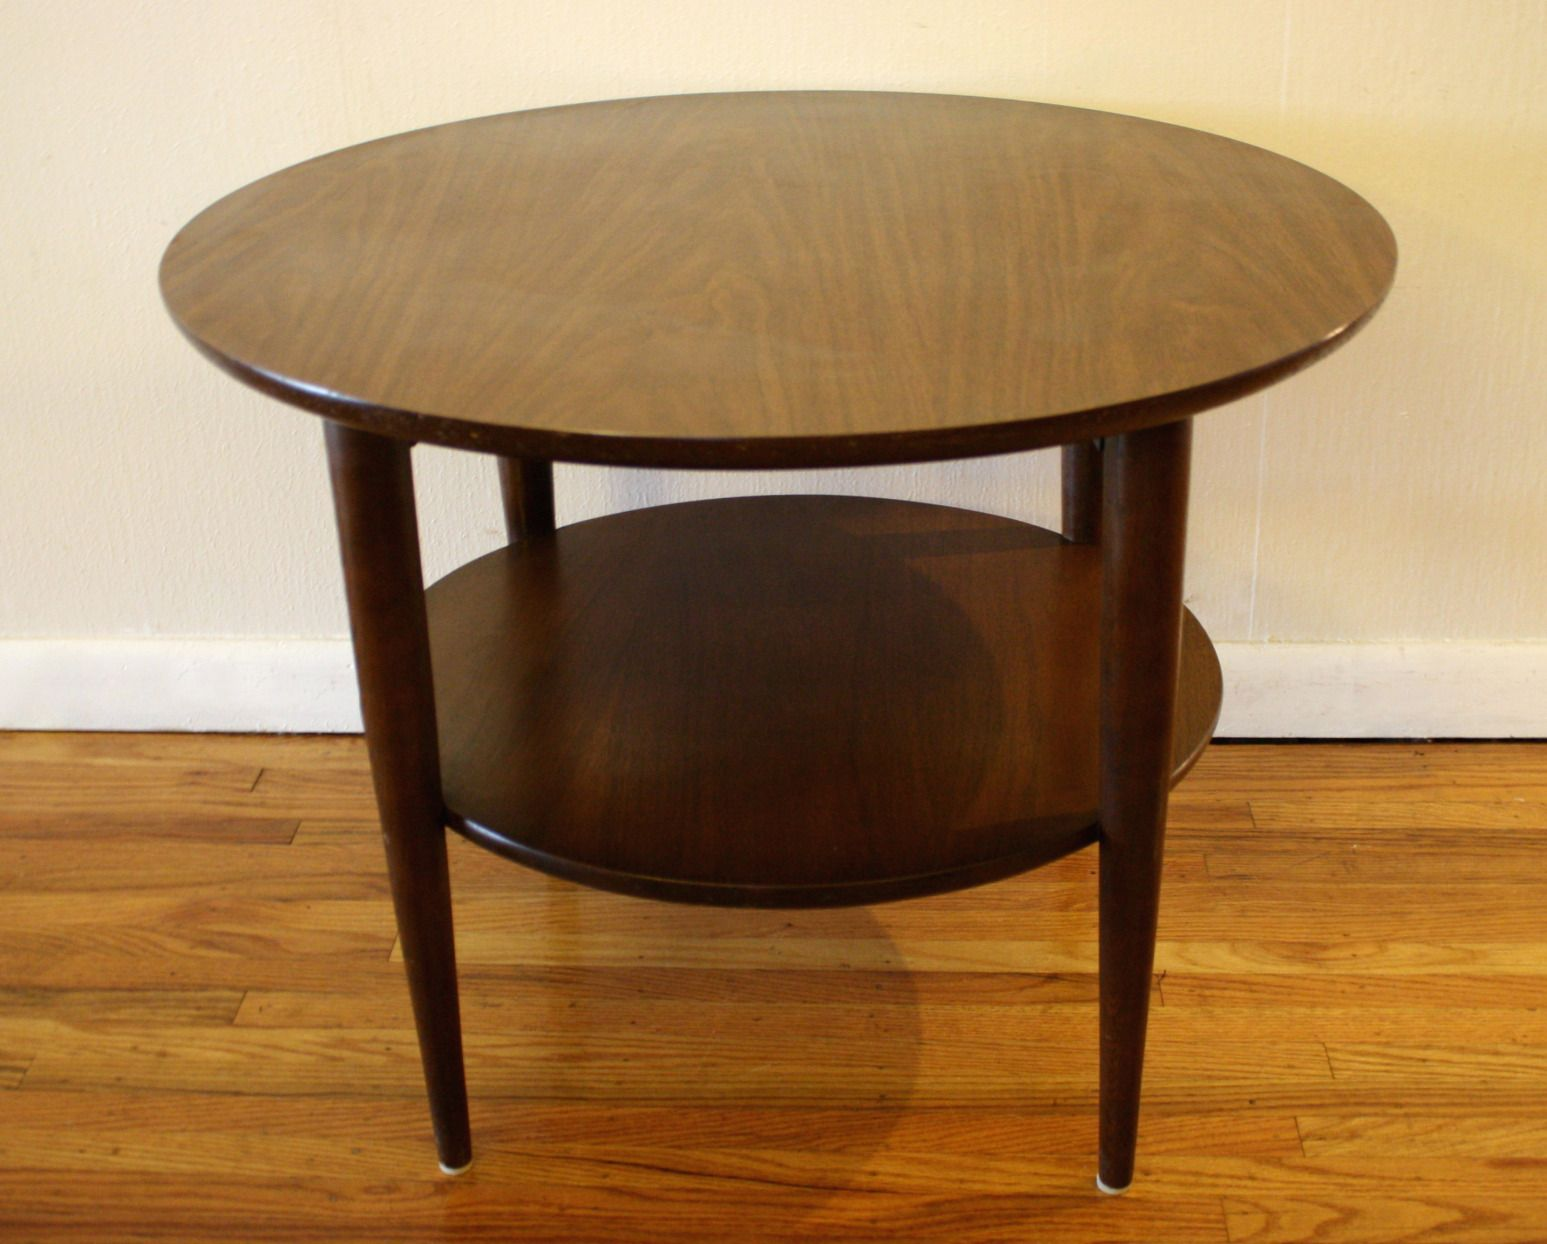 100 Round Table Target Best Office Furniture Check More At Http Livelylig Round Coffee Table Modern Mid Century Modern Coffee Table Side Table Woodworking [ 1244 x 1547 Pixel ]